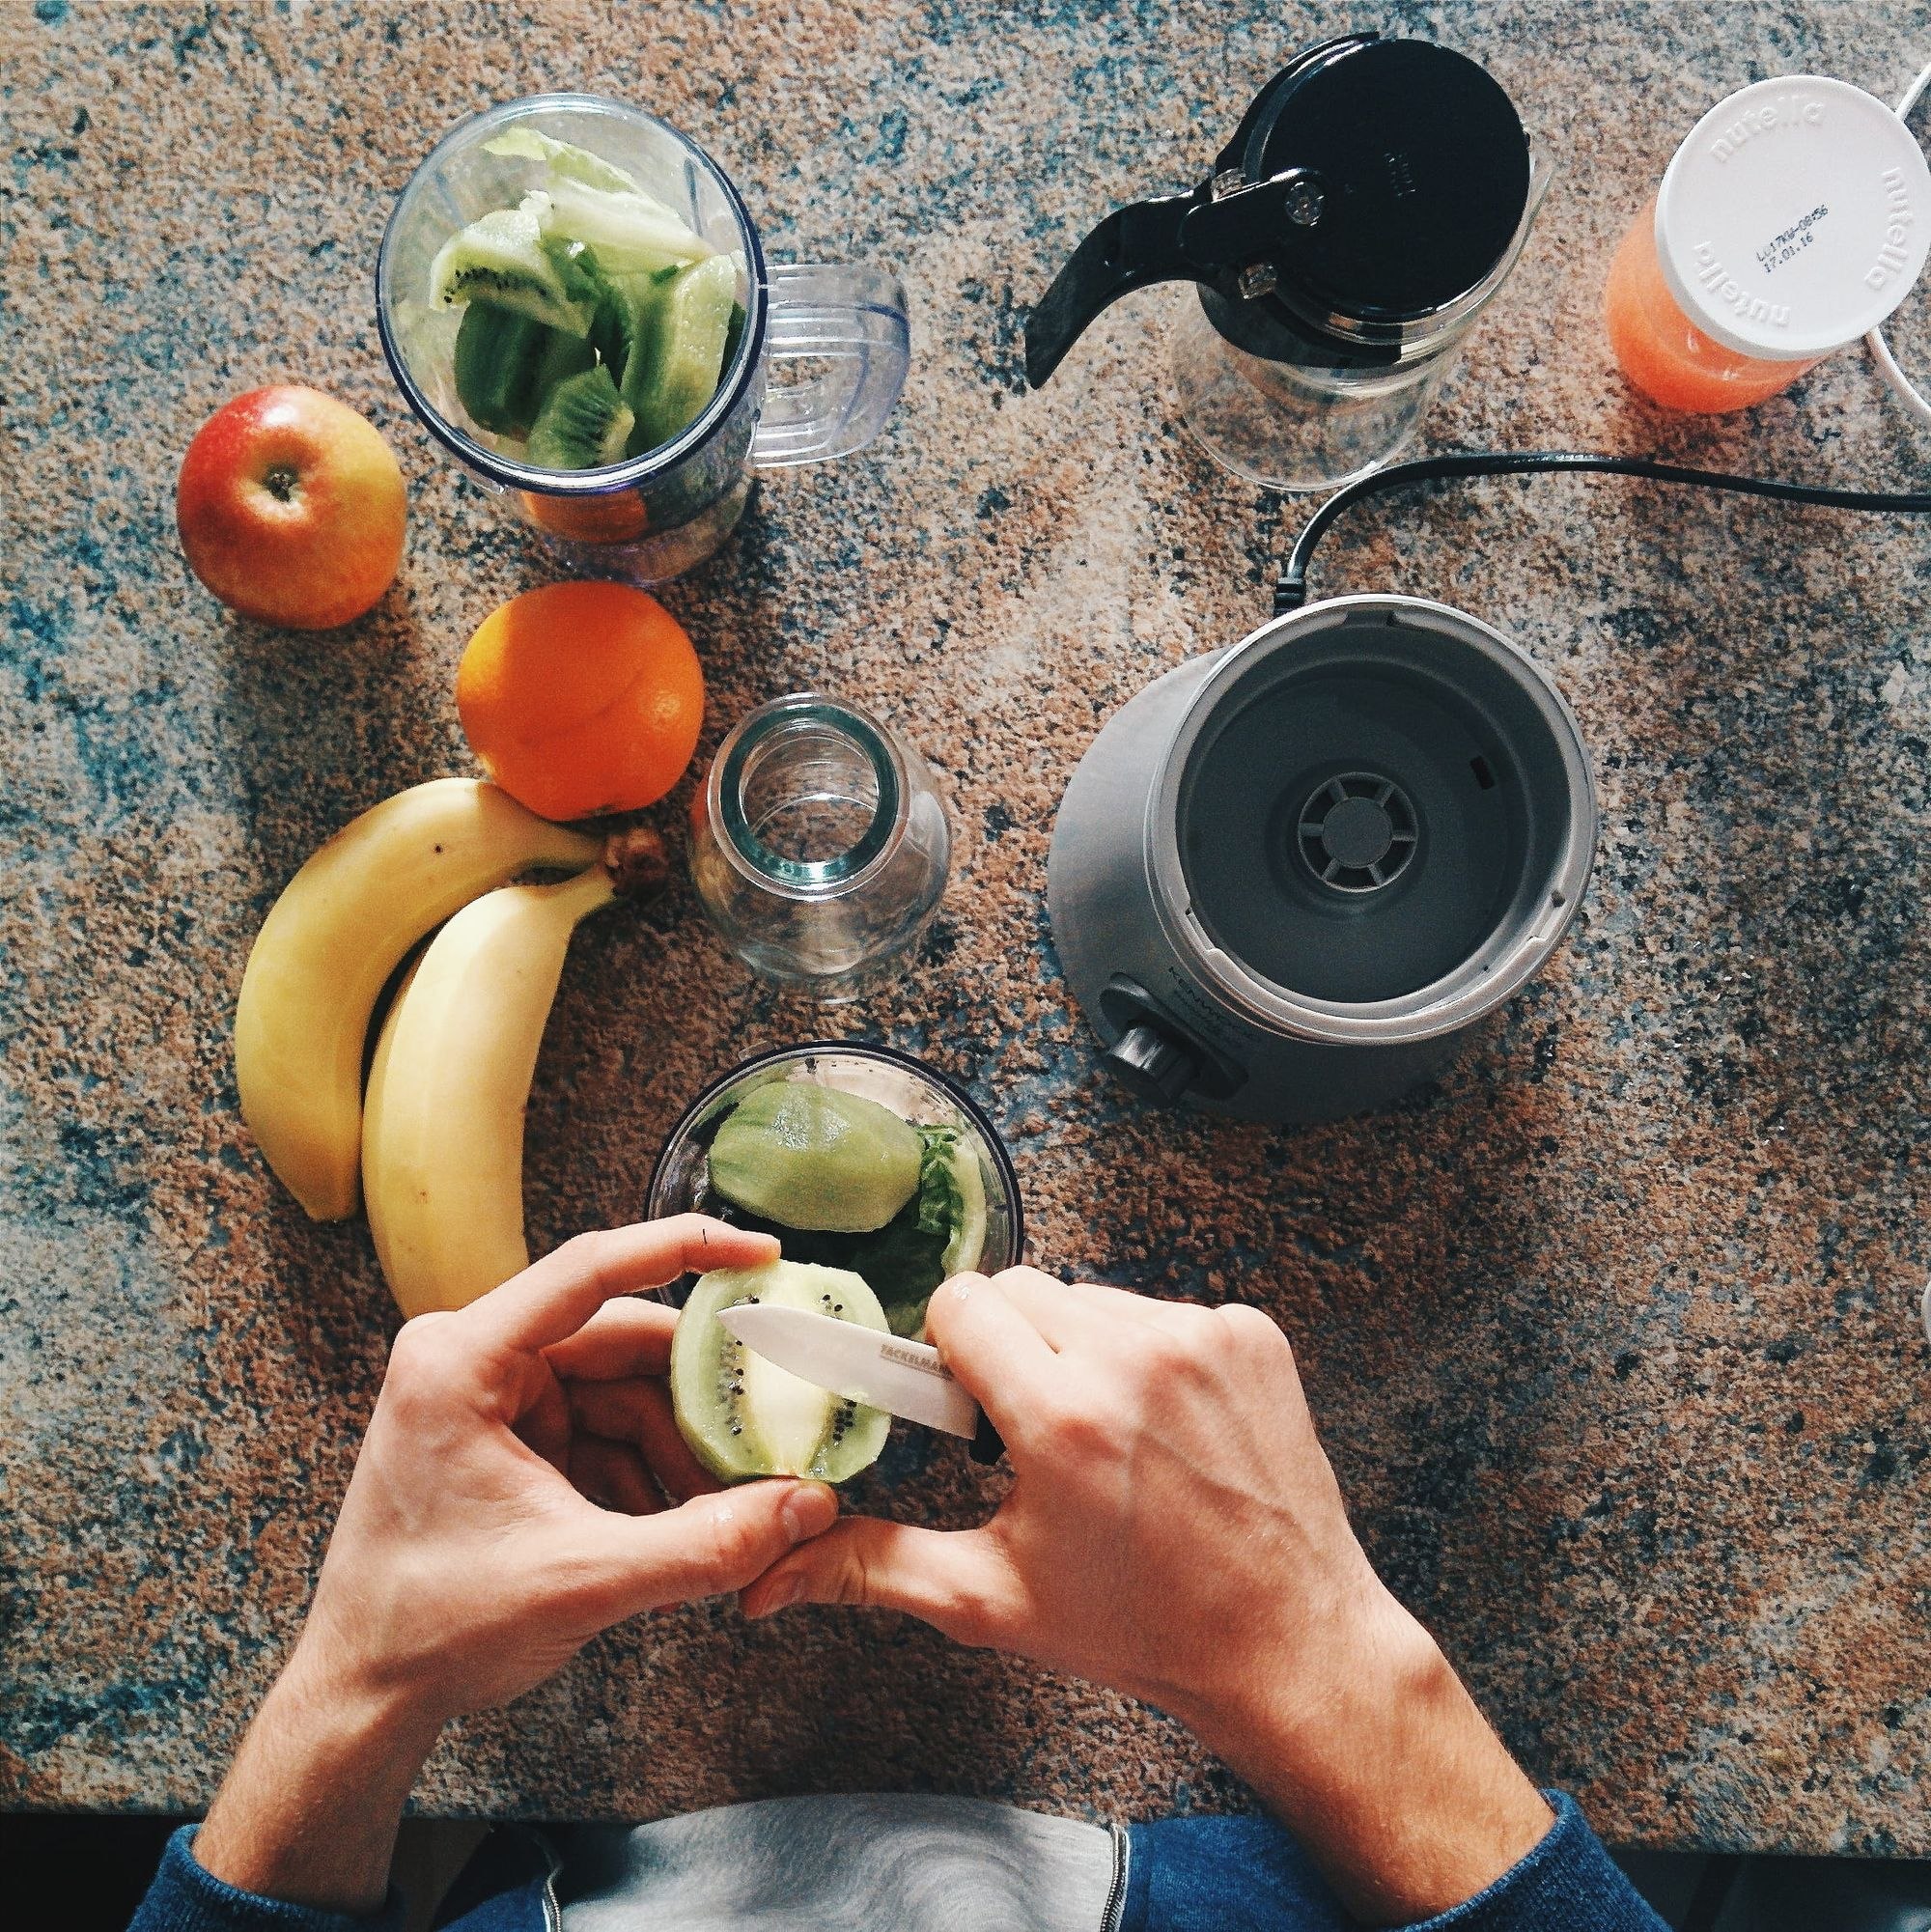 Top 5 best personal size smoothie blenders